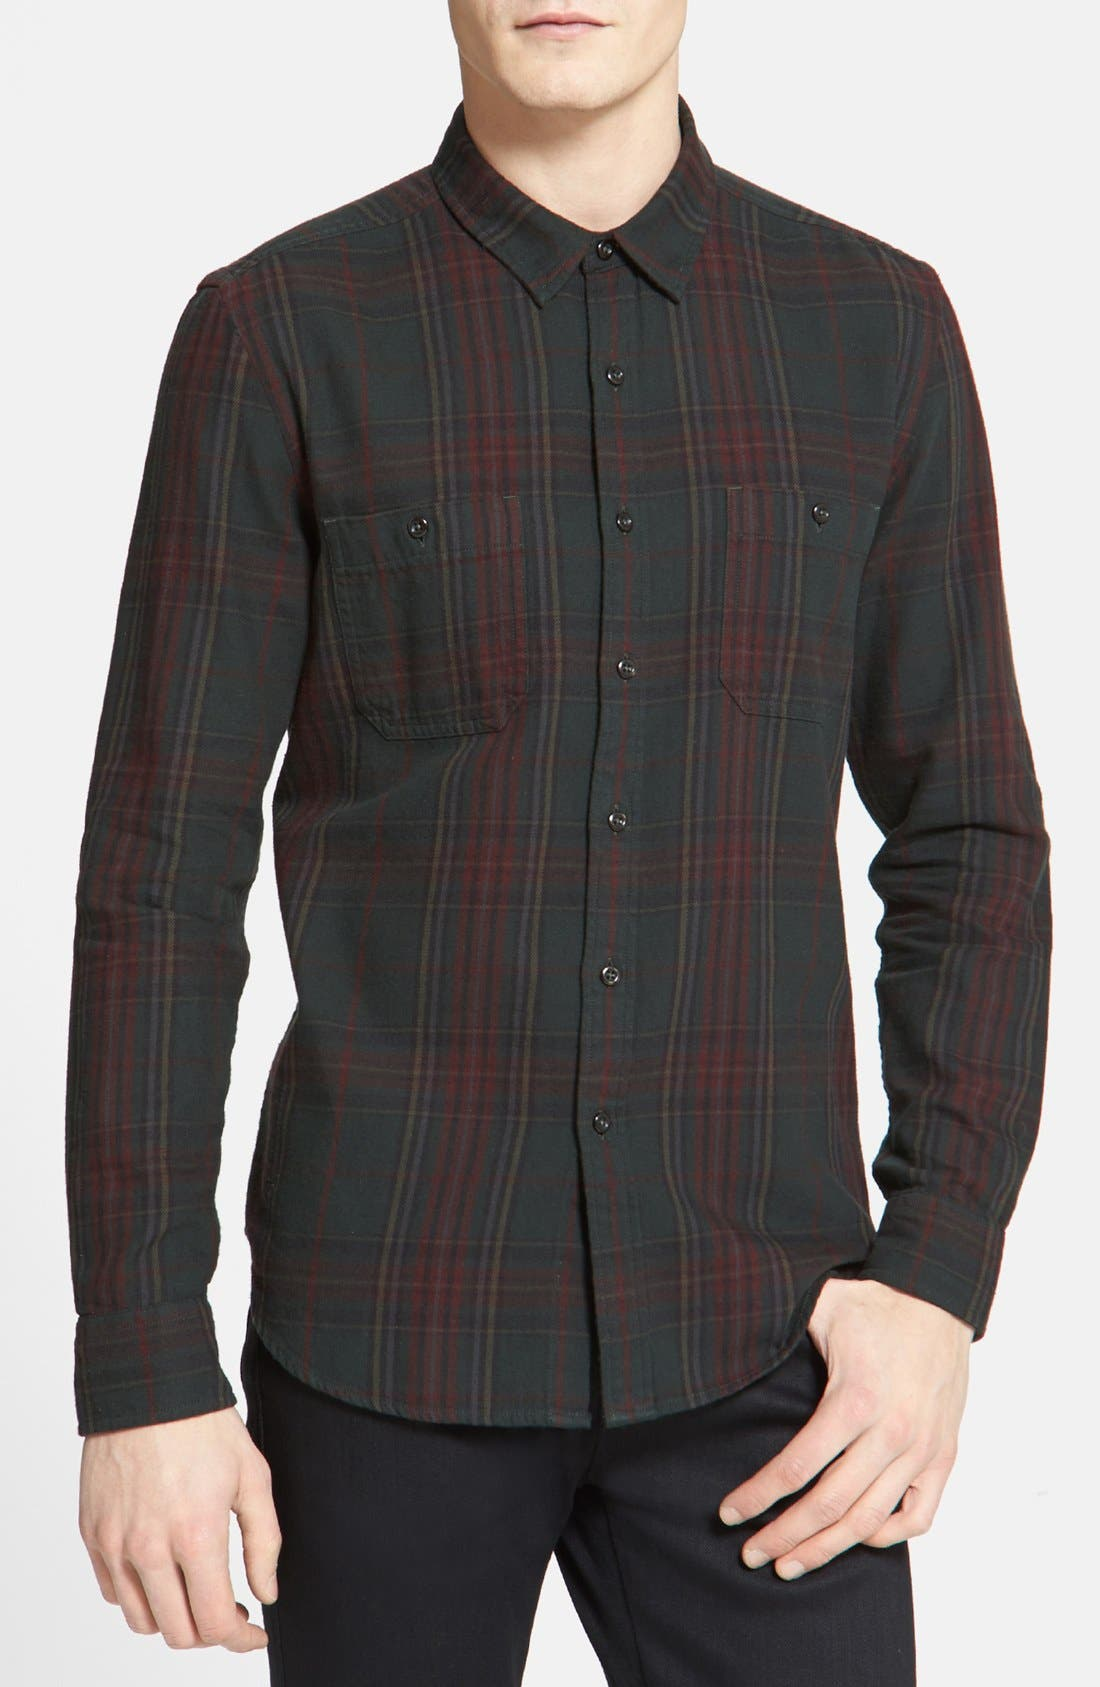 Alternate Image 1 Selected - Topman Classic Fit Tartan Plaid Flannel Shirt